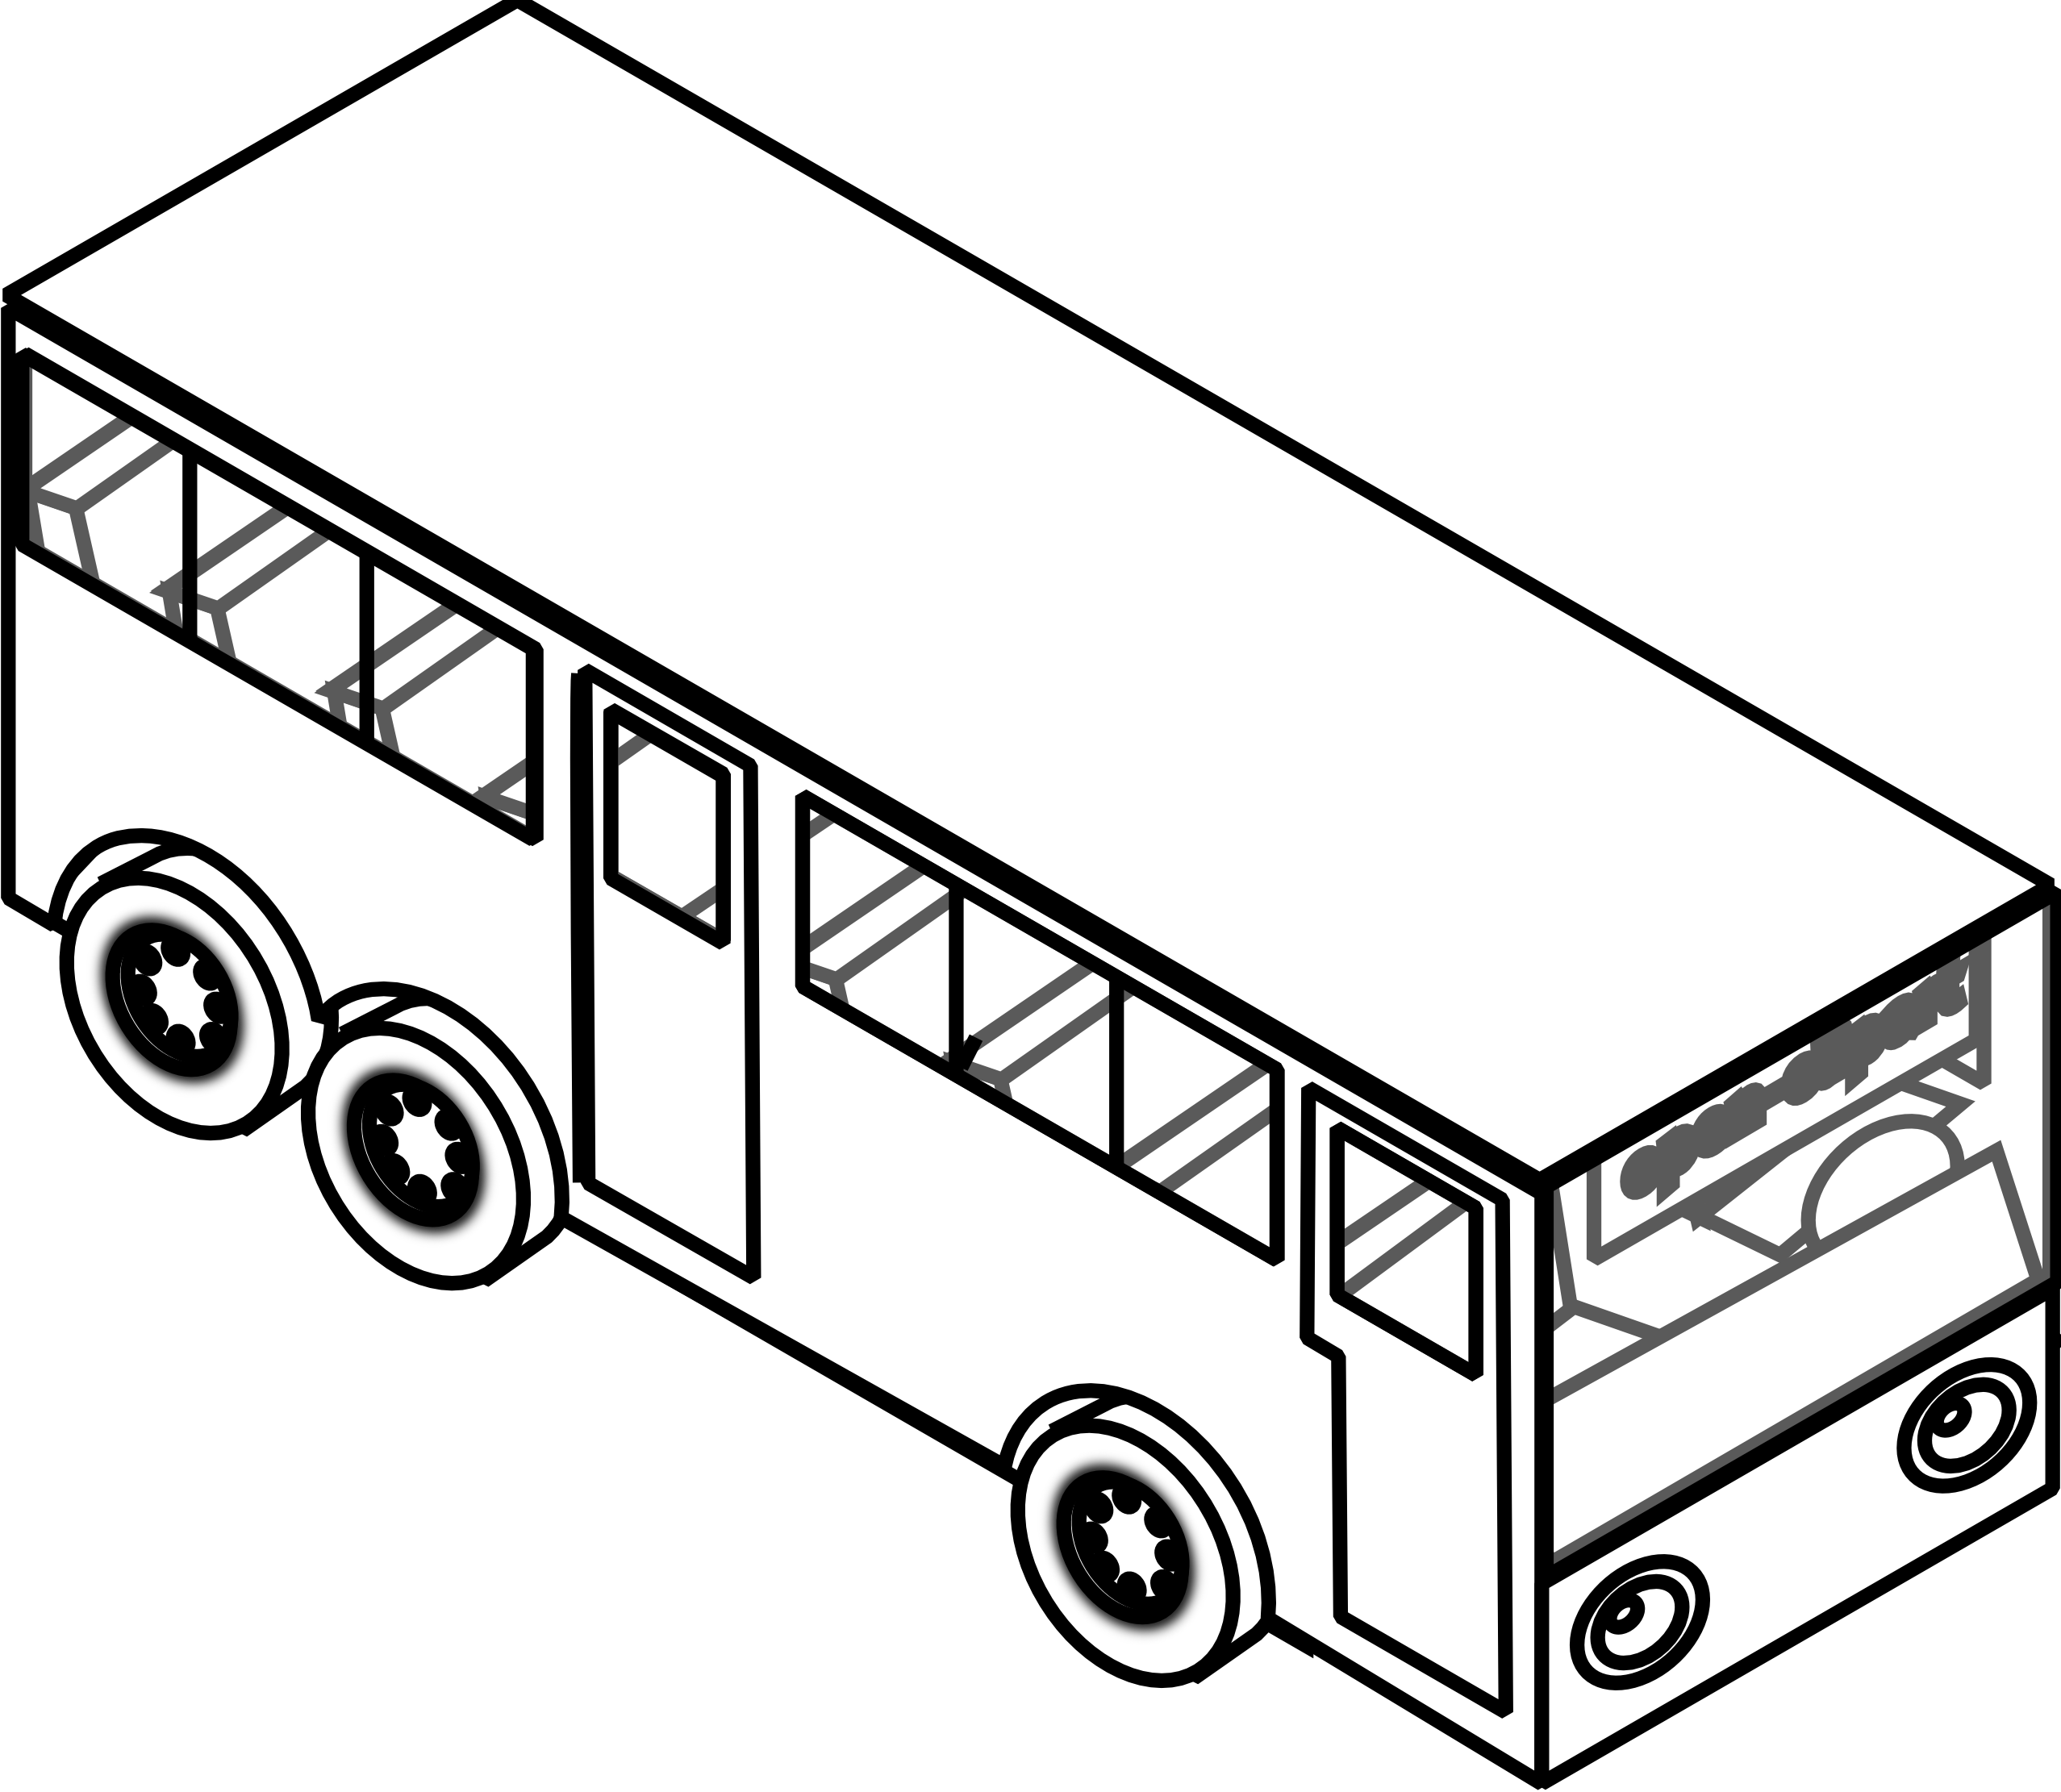 Bus  black and white bus clipart black and white free images